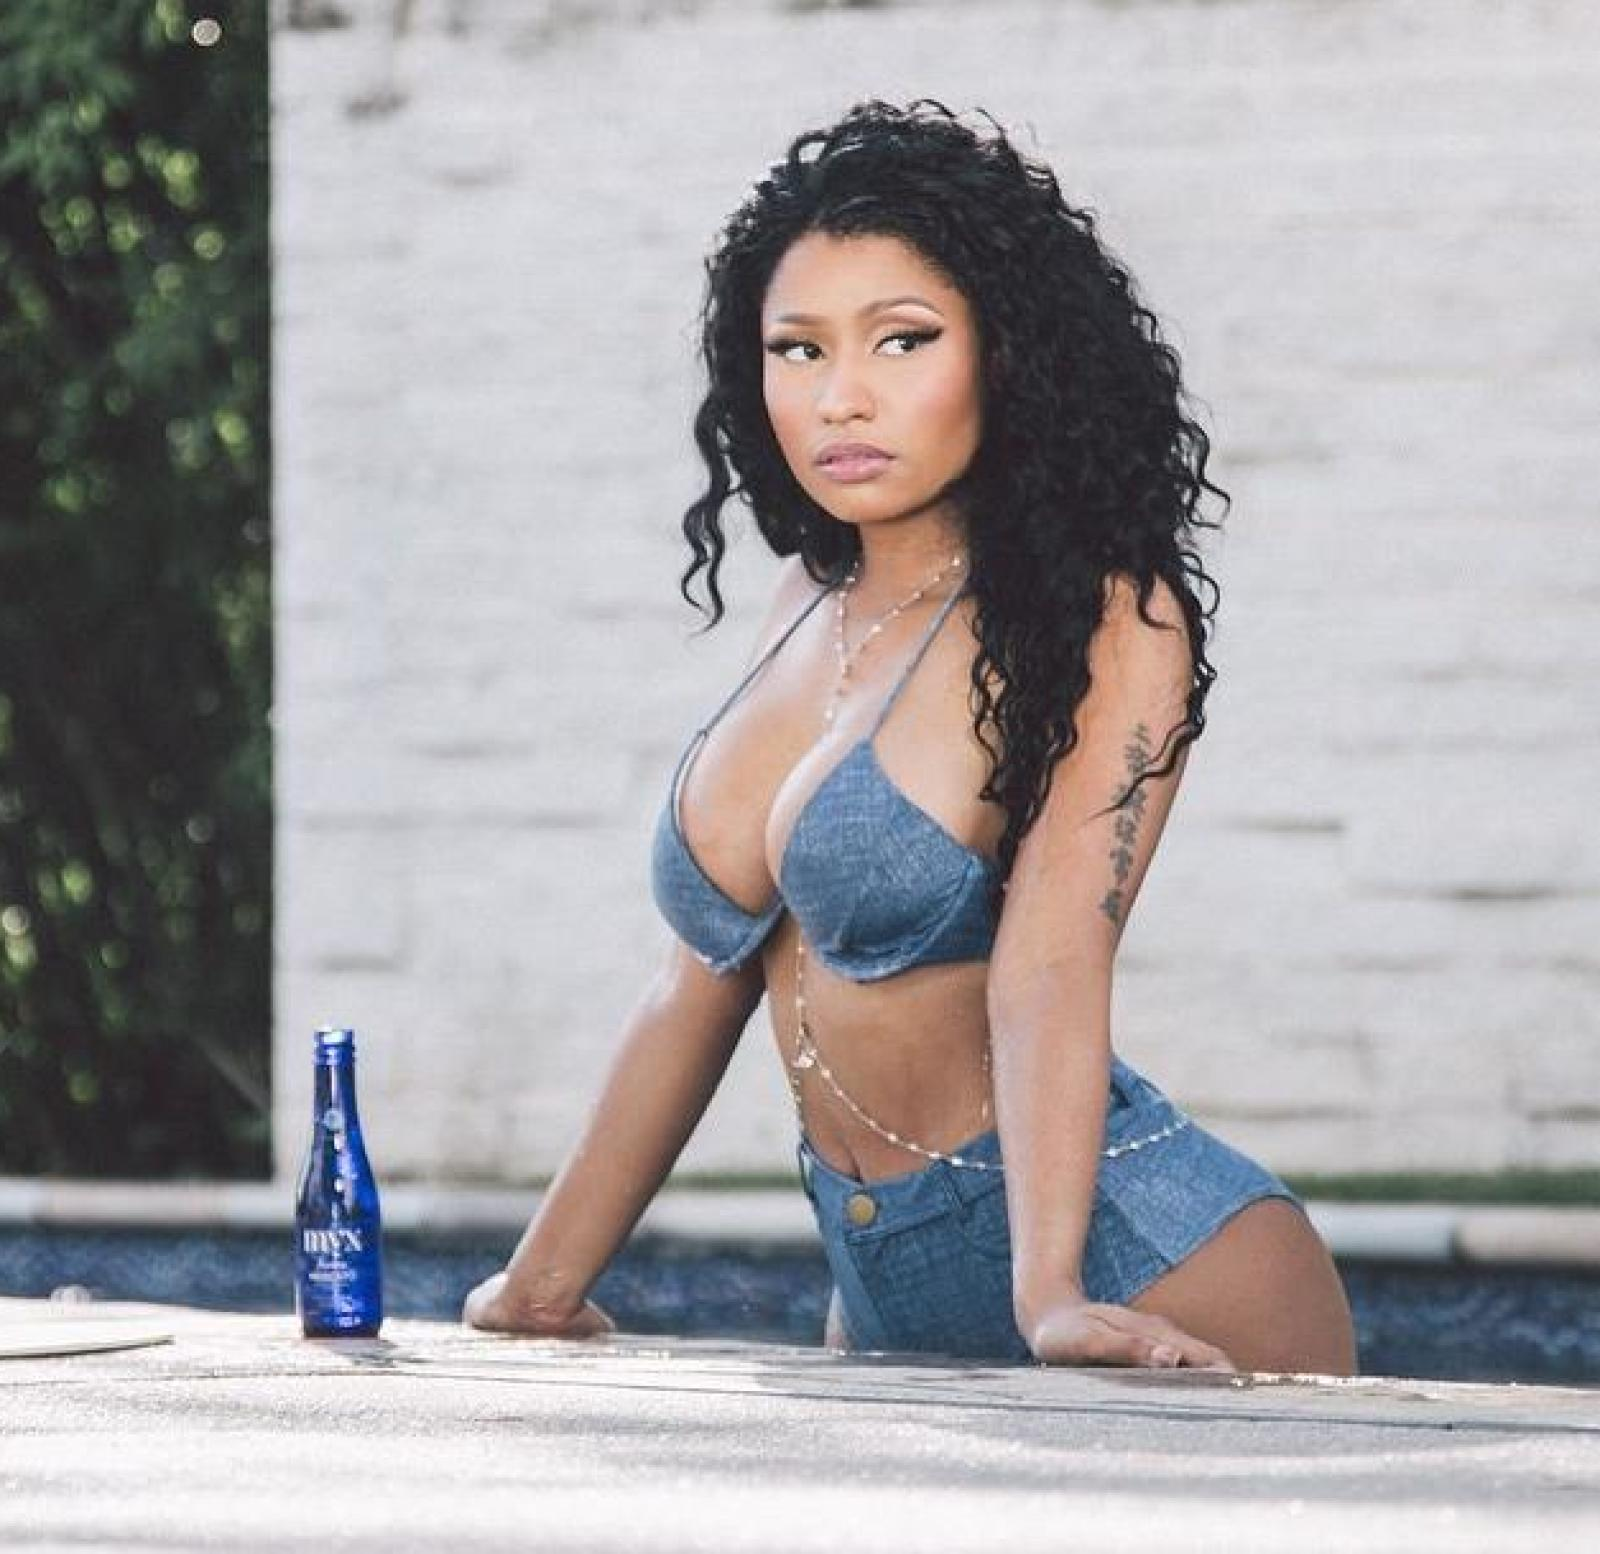 nicki minaj looking sexy